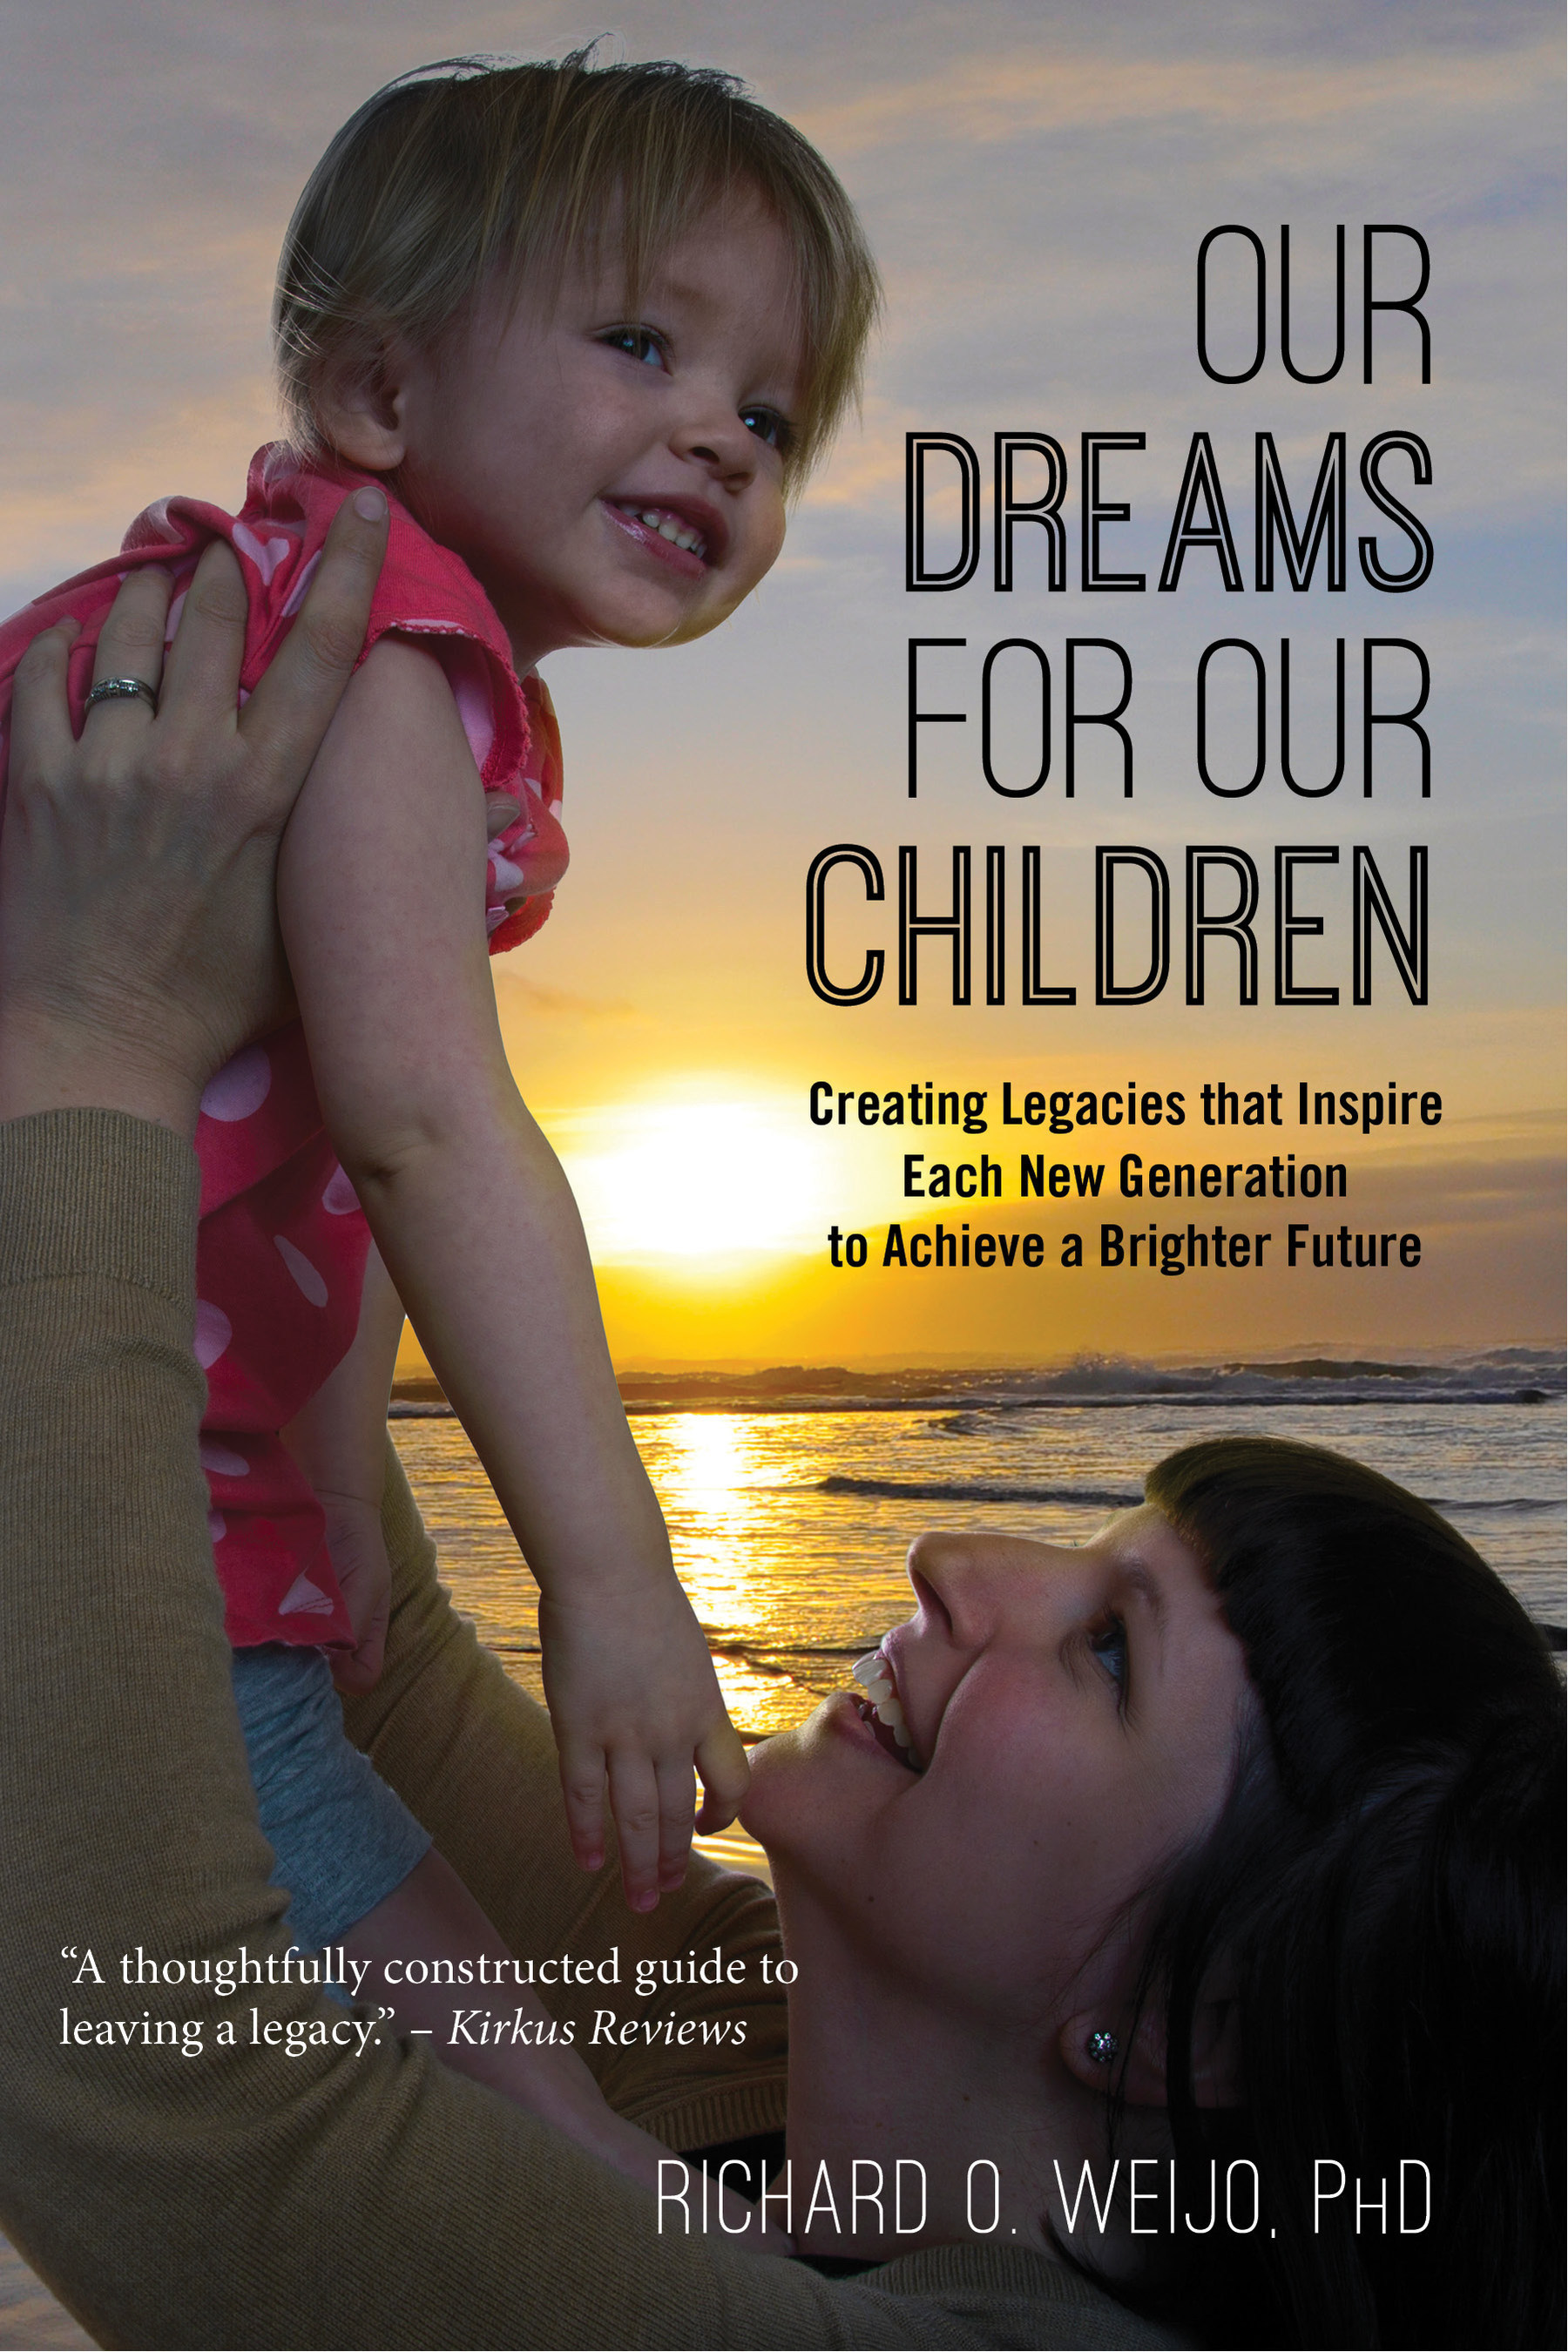 OUR DREAMS FOR OUR CHILDREN Inspires a New Generation